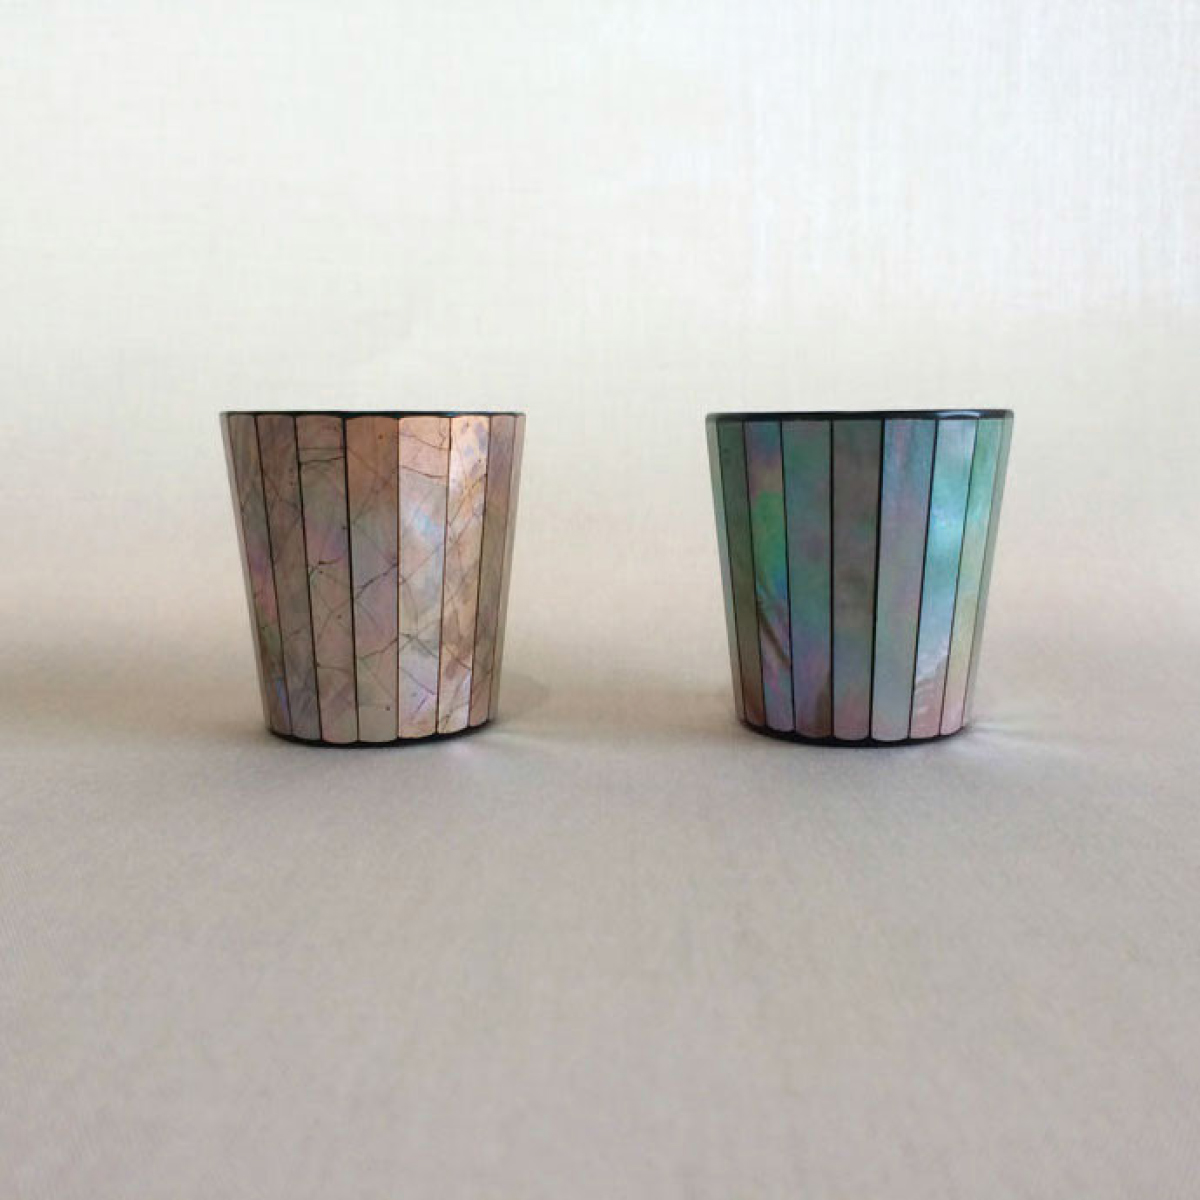 《SMALL CUP》2015年